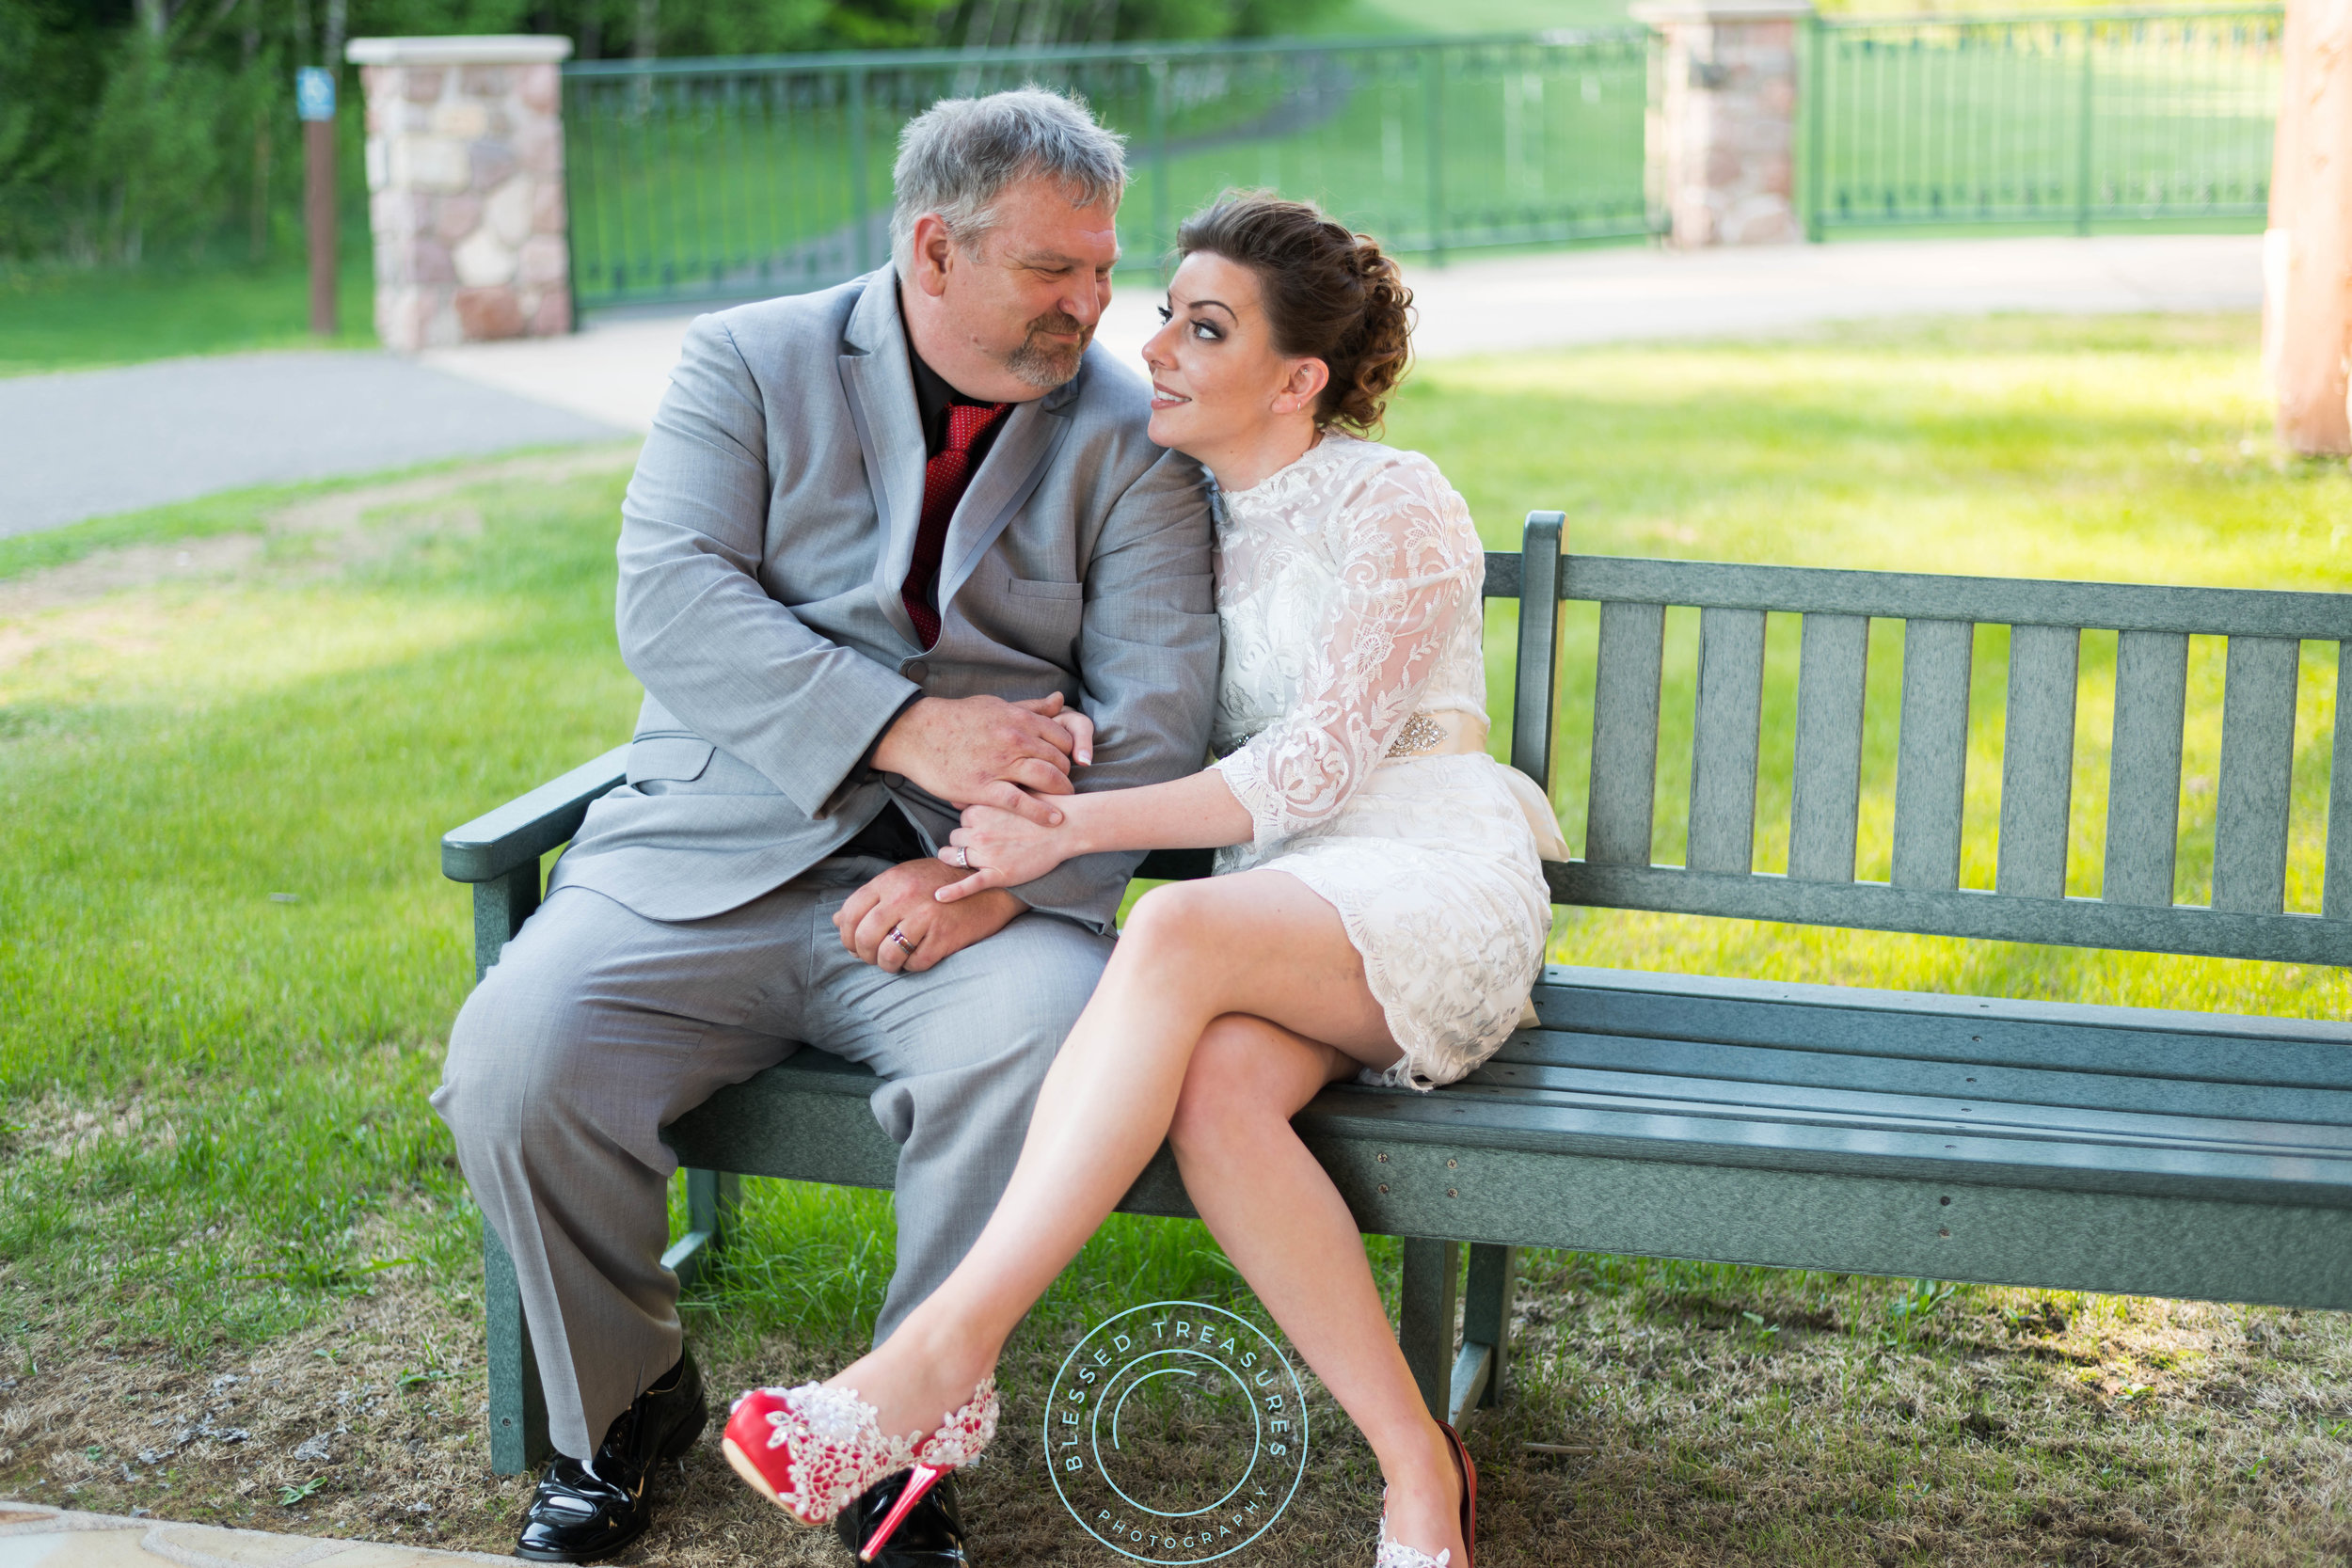 George Young complex banquet hall golf course michigan wedding bride and groom portraits romantic fun happy lace dress red pumps grey suit curly brunette wedding updo